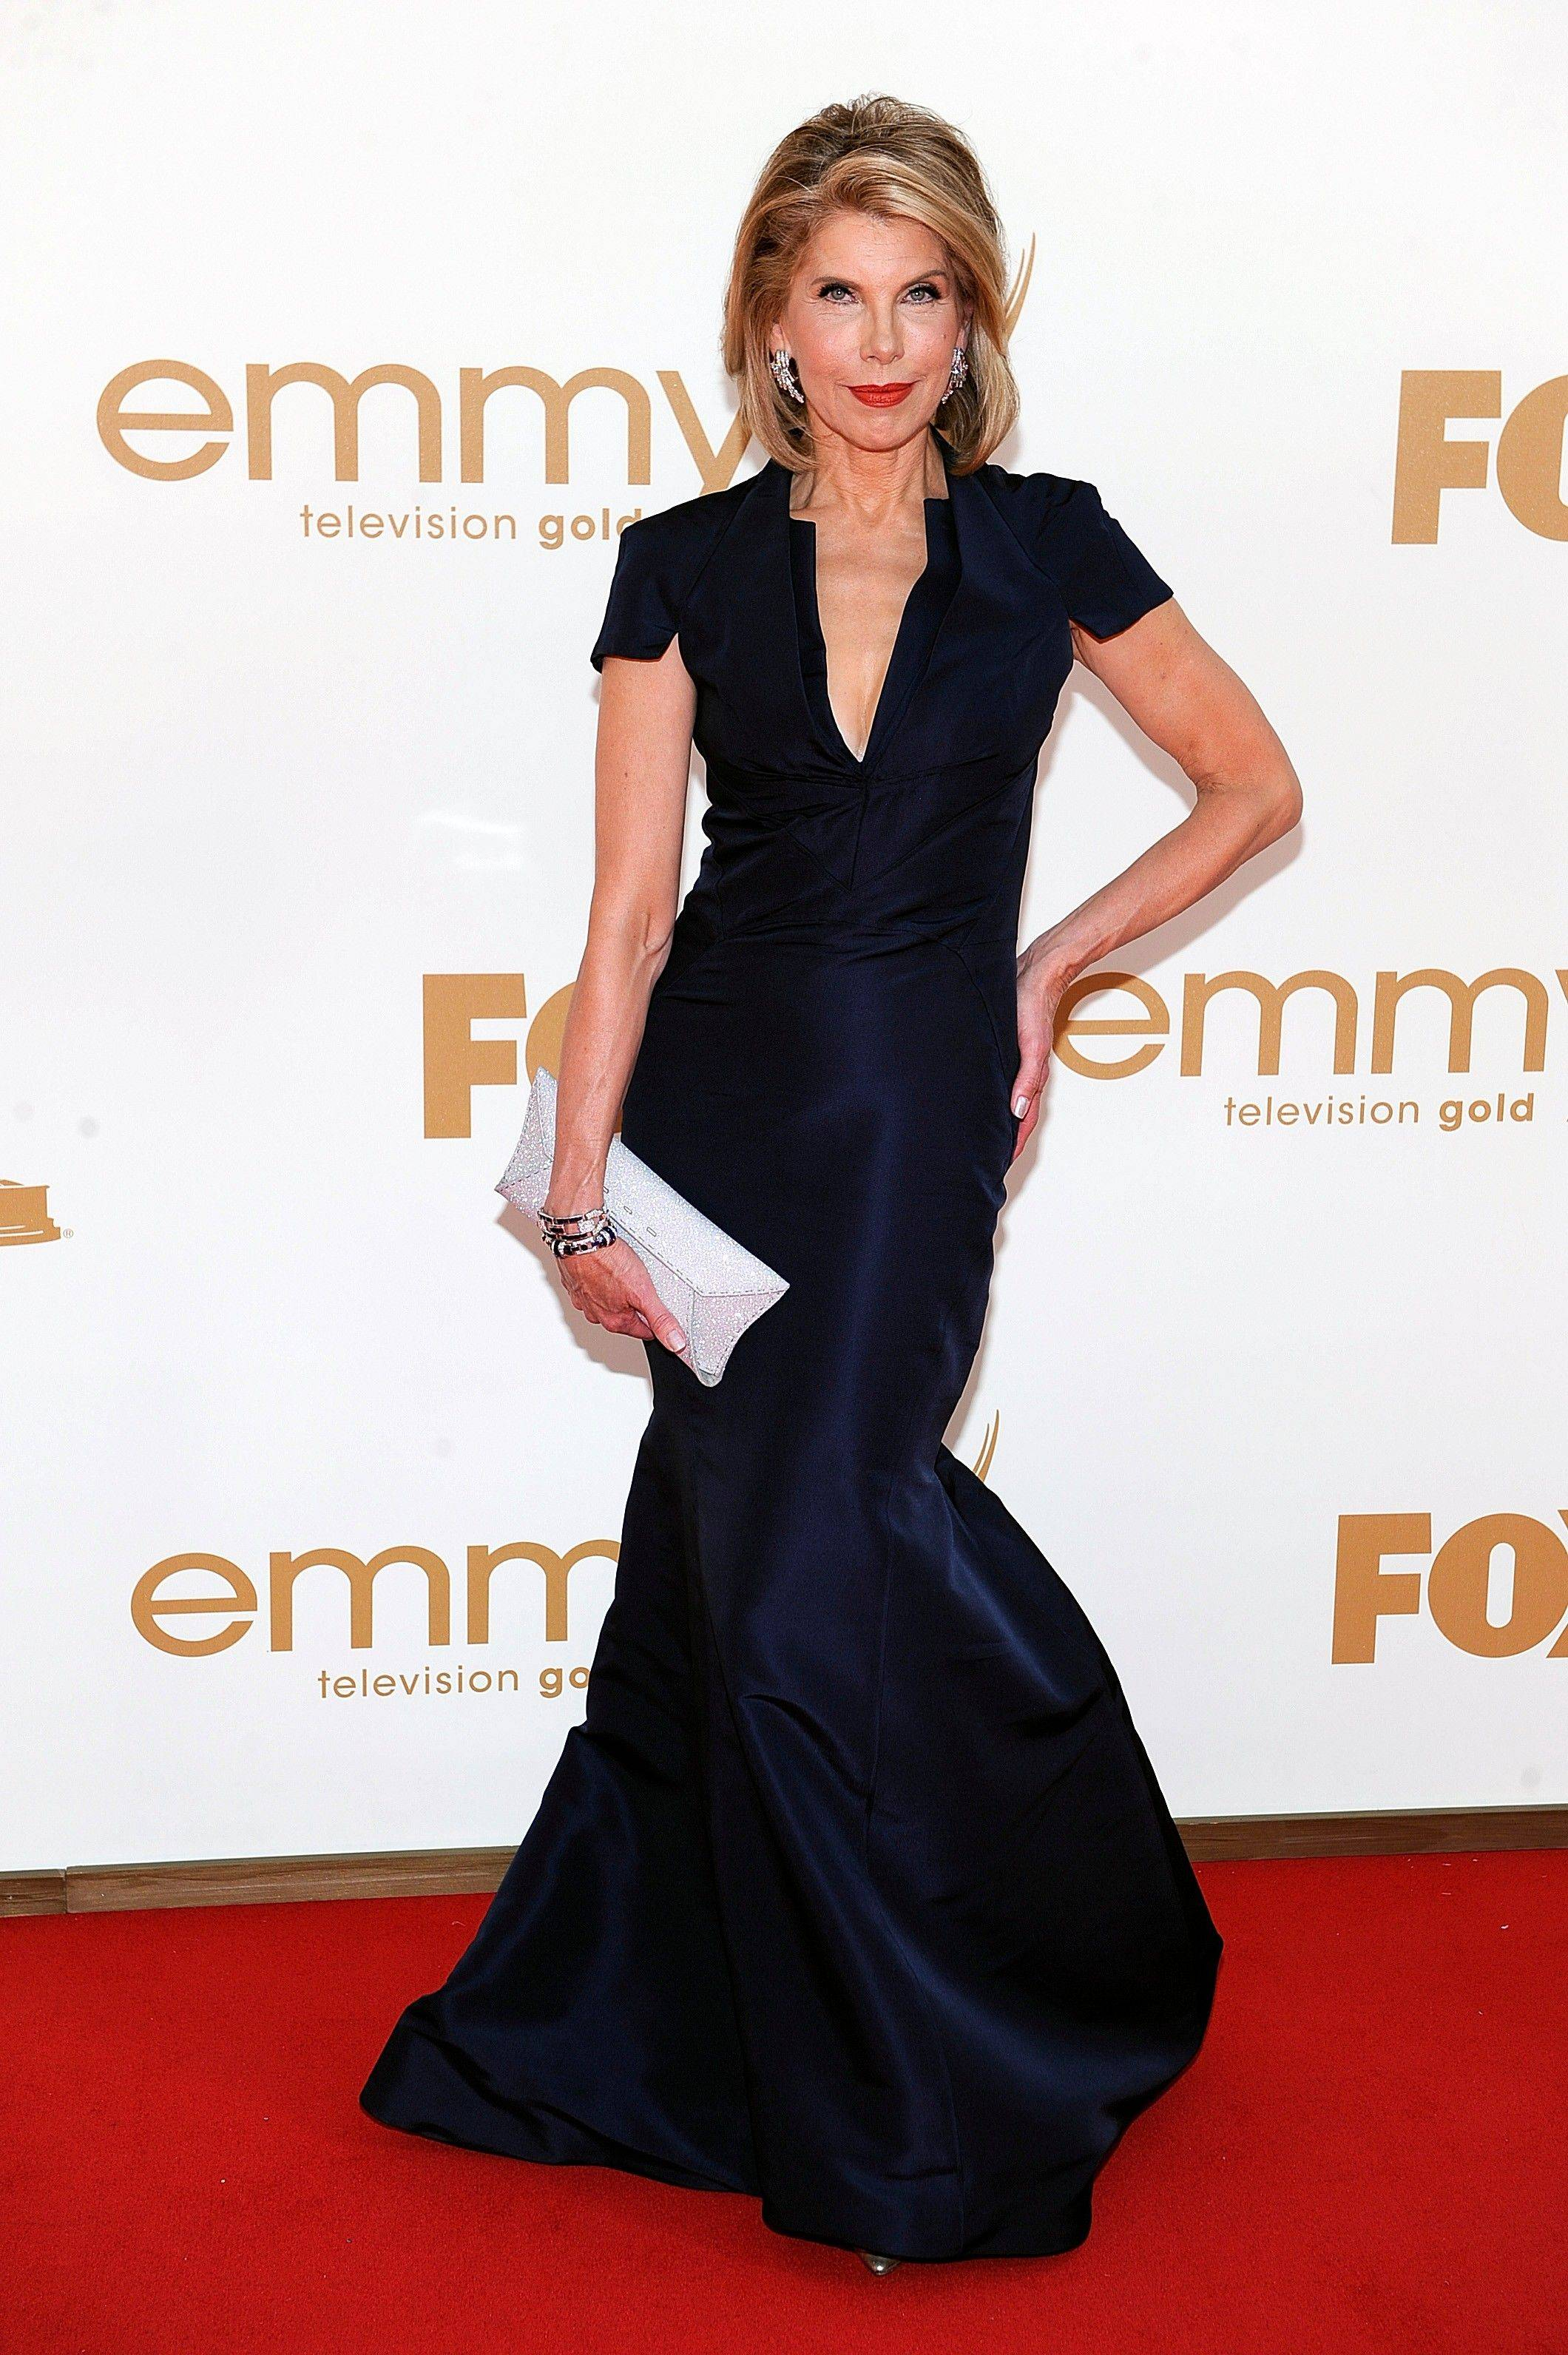 """Good Wife"" star Christine Baranski puts her own twist on the dark gown trend with this cap-sleeved number."